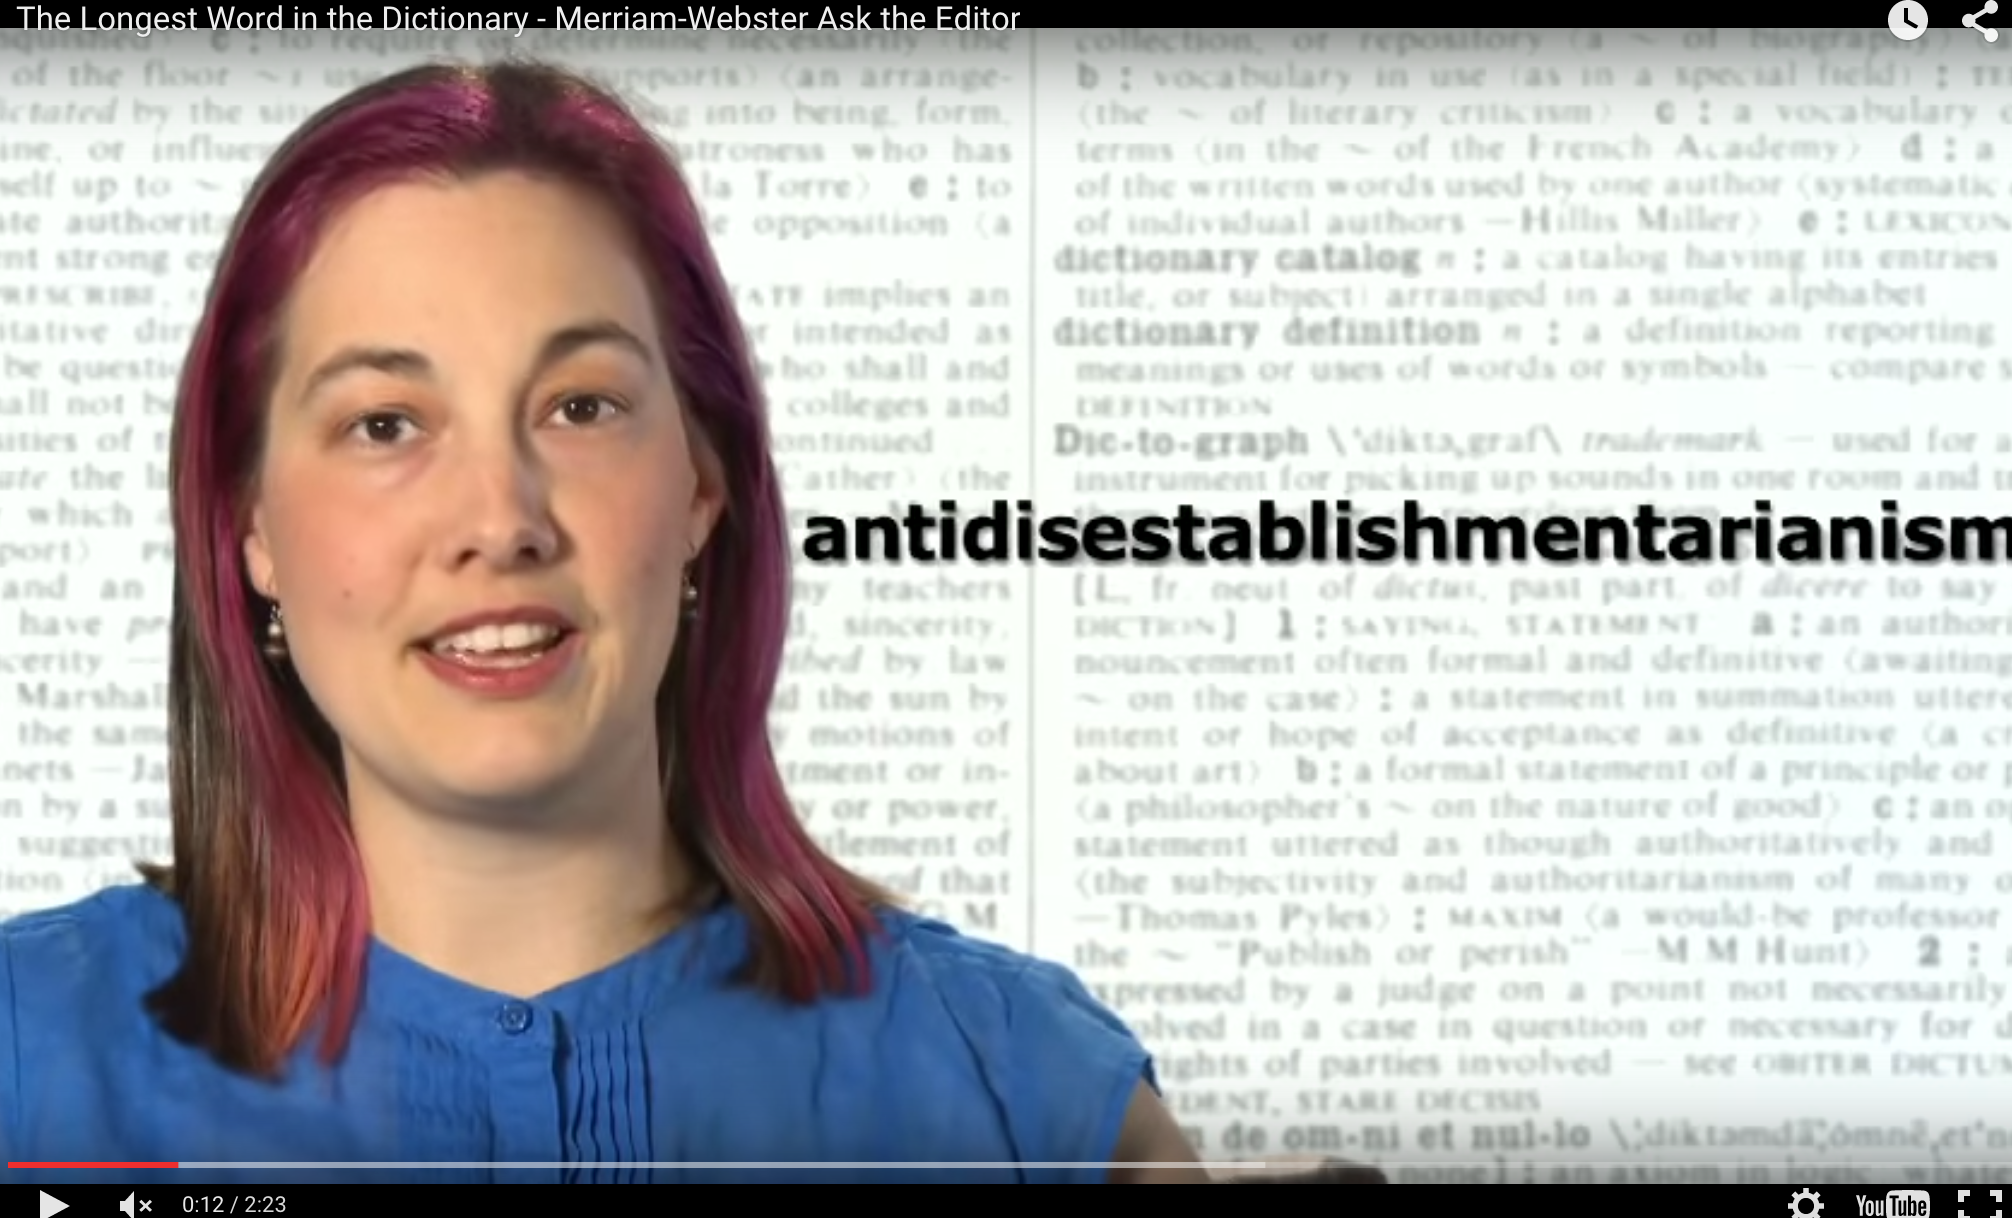 Antidisestablishmentarianism Isnt In The Dictionary Lets Change